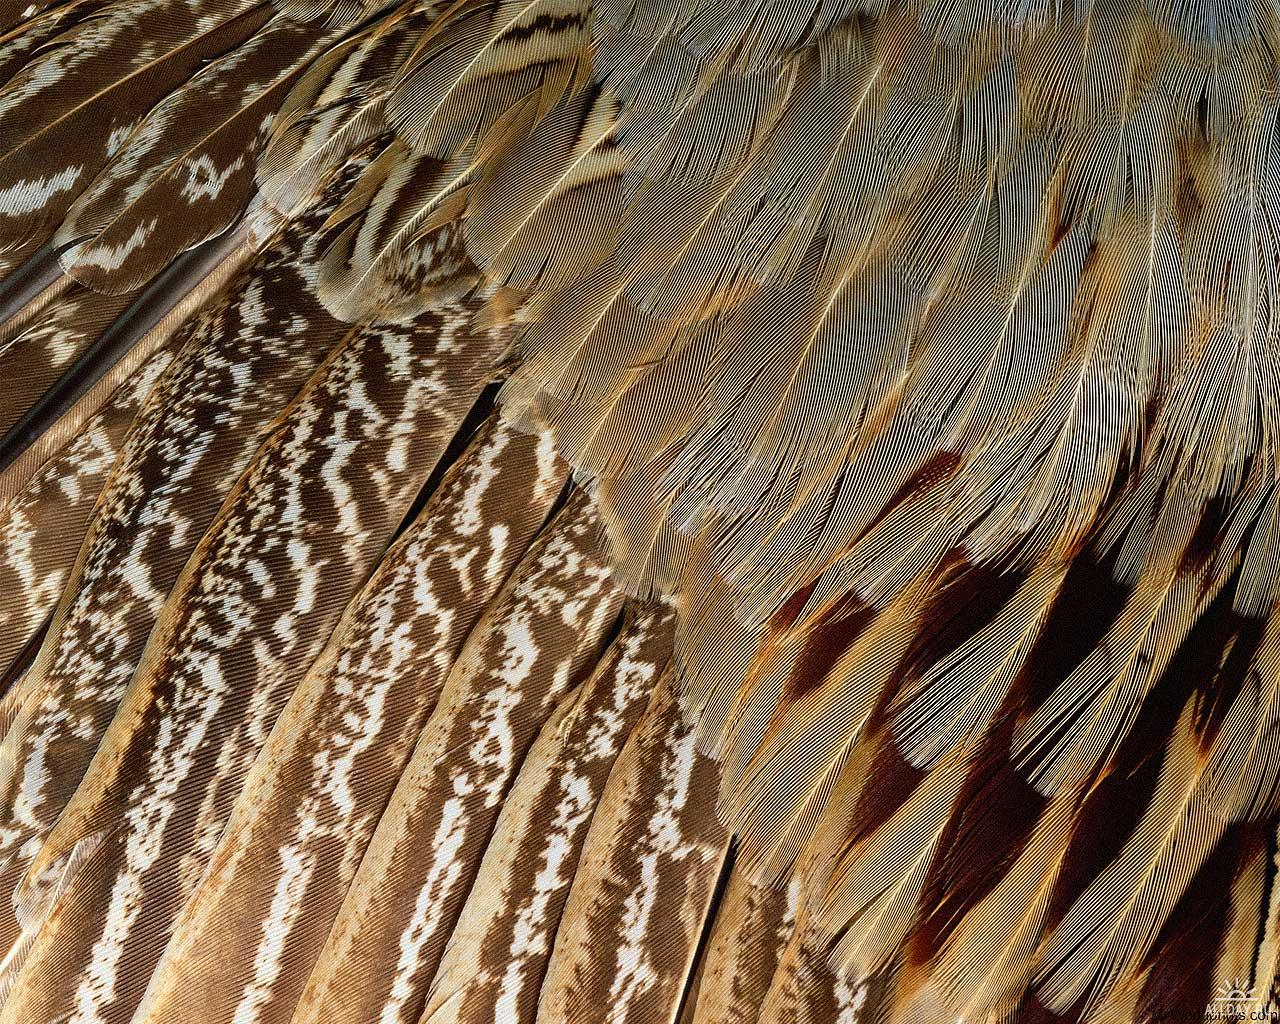 , texture feather, download background, photo, image, feather background texture